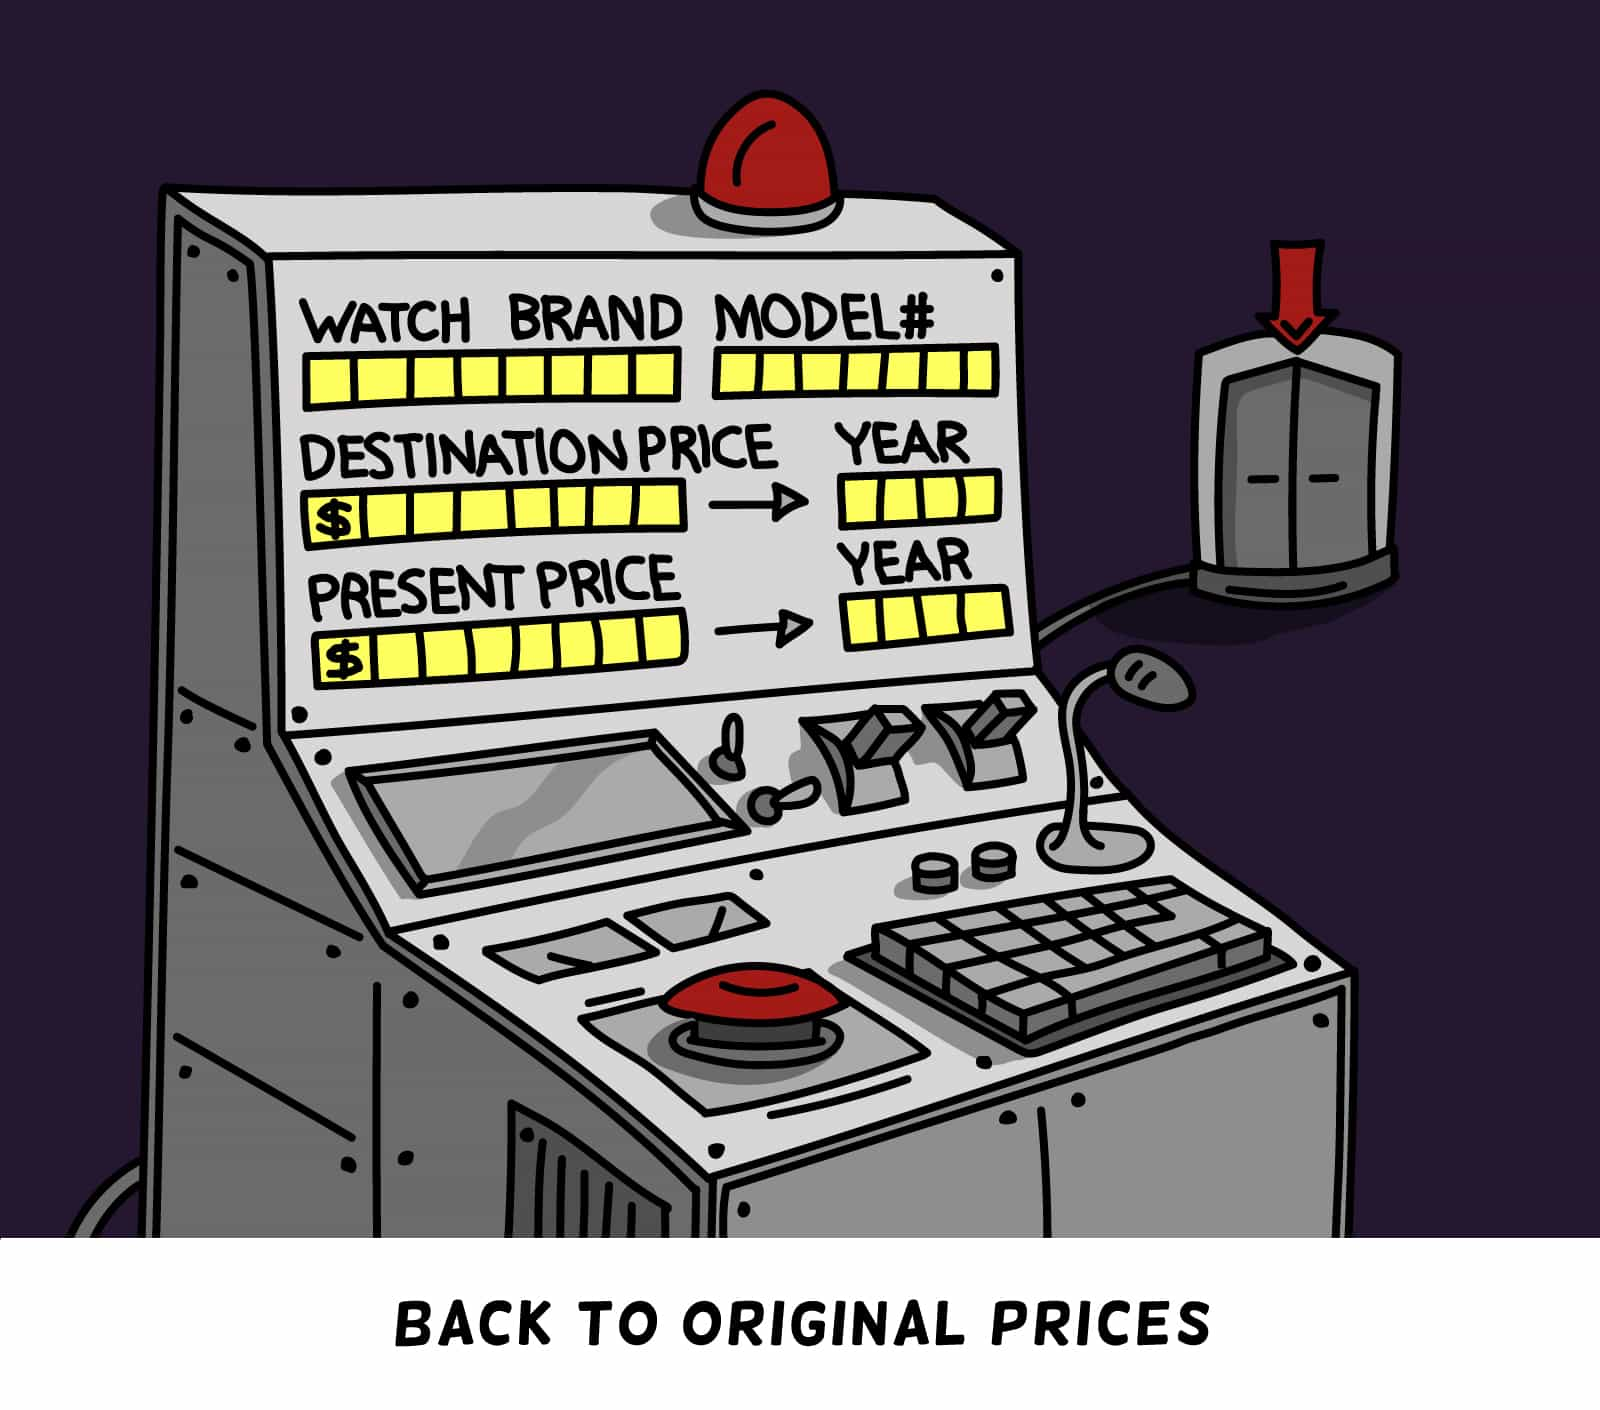 Back to original prices